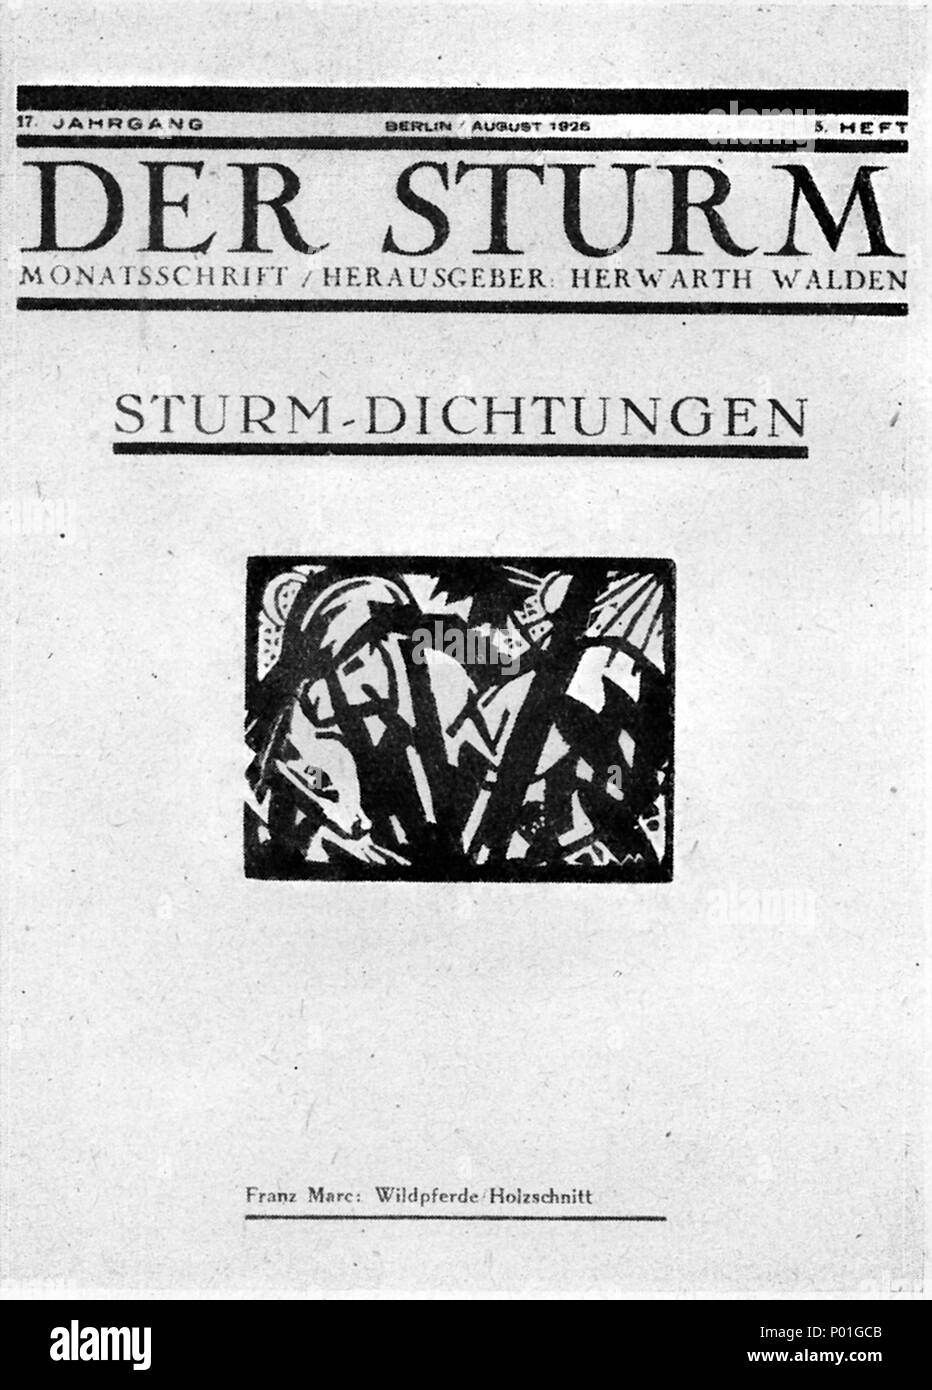 . Deutsch: Titelblatt Monatsschrift Der Sturm. Čeština: Titulní strana měsíčníku Der Sturm.  . August 1926. graphic (Holzschnitt):   Franz Marc  (1880–1916)       Alternative names Franz Moriz Wilhelm Marc; Franz Moritz Wilhelm Marc; Marc  Description German painter and sculptor  Date of birth/death 8 February 1880 4 March 1916  Location of birth/death Munich Verdun  Work location Munich (1903), Paris (1903. 1907), Sindelsdorf, Oberbayern (1910), Paris (1912–1914)  Authority control  : Q44054 VIAF:?44310294 ISNI:?0000 0001 0857 0049 ULAN:?500010681 LCCN:?n80007960 NLA:?35327166 WorldCat 8 Wald Stock Photo